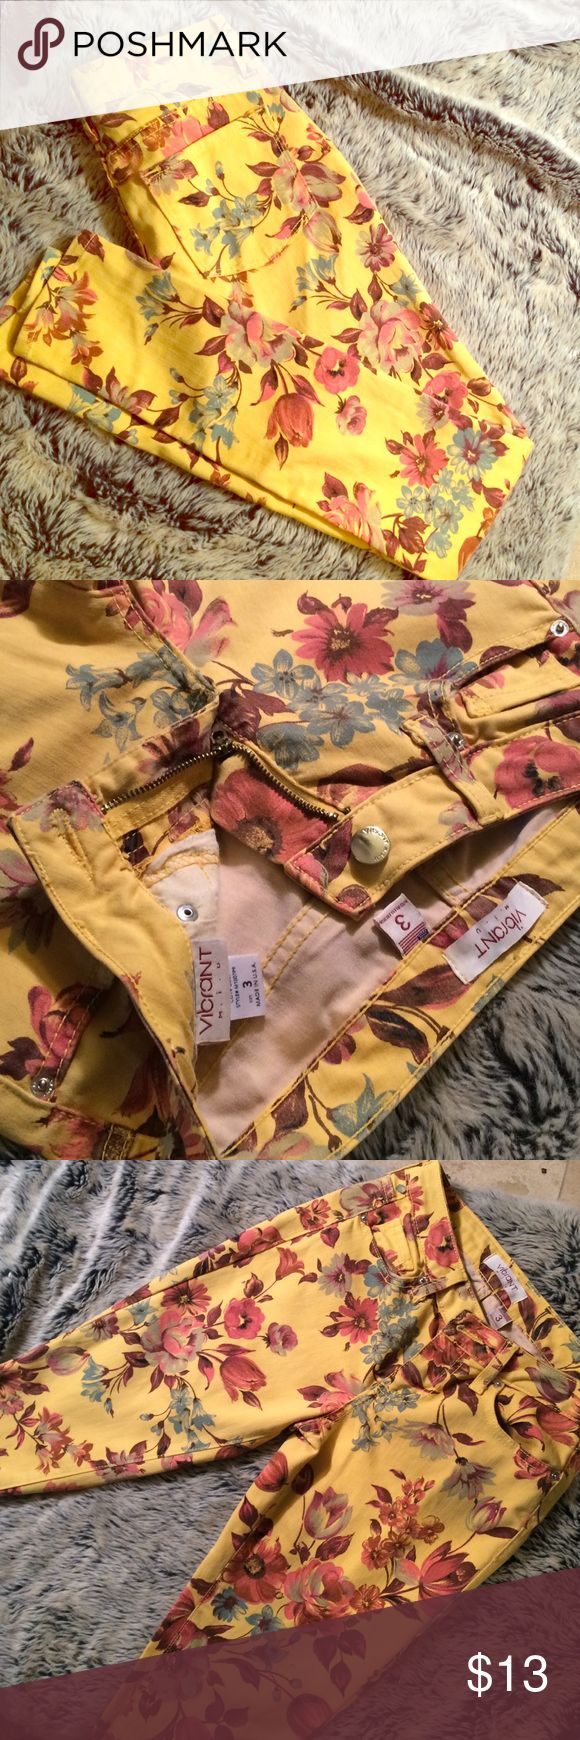 Vibrant floral print yellow skinny jeans Vibrant Miu brand - size 3 - yellow jeans with floral print. Skinny fit. vibrant miu Jeans Skinny